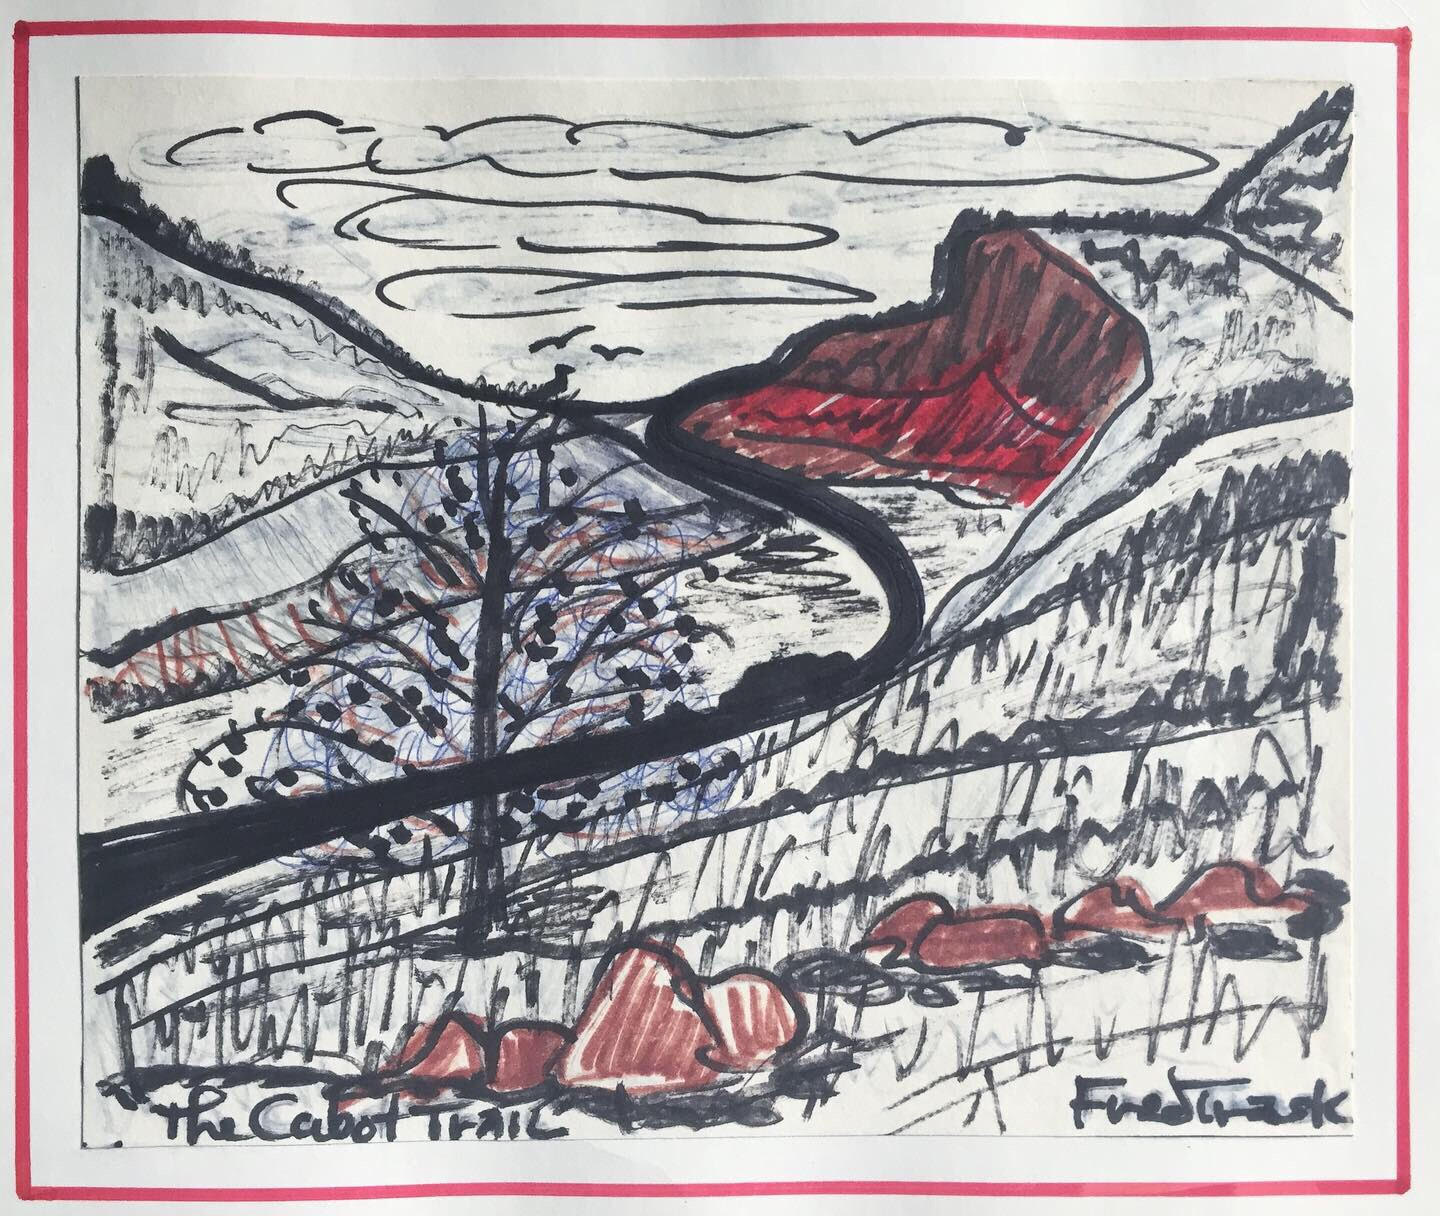 """Fred Trask 'The cabot trail' - Pen and marker on paper adhered to card stock, signed and titled, image 7""""x8.5"""".Good condition. Labeling on back. Unframed..$150.00SOLD."""